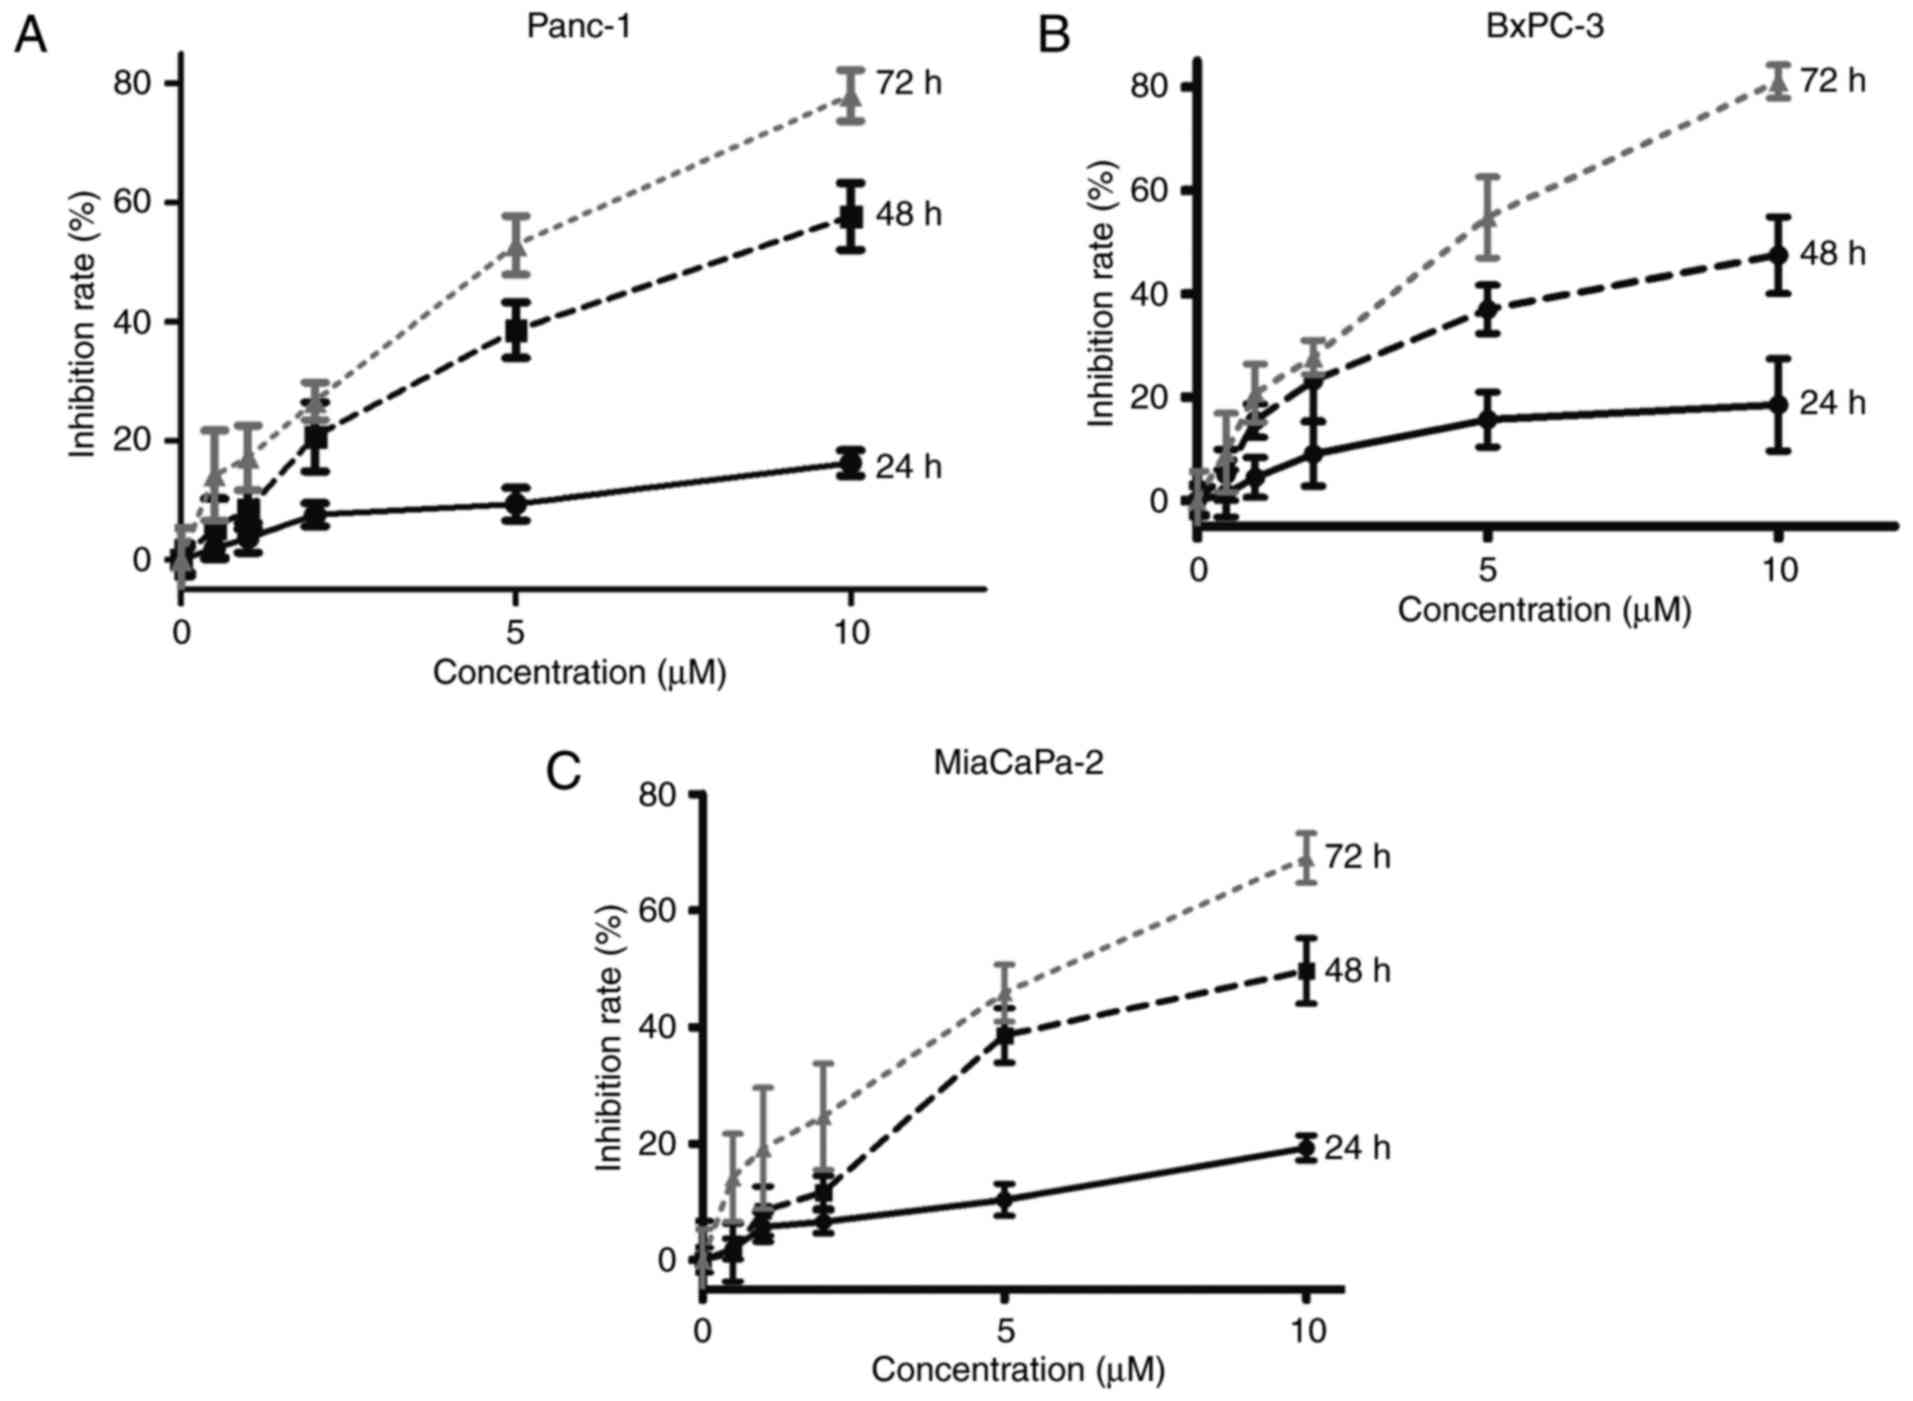 Itraconazole inhibits invasion and migration of pancreatic cancer